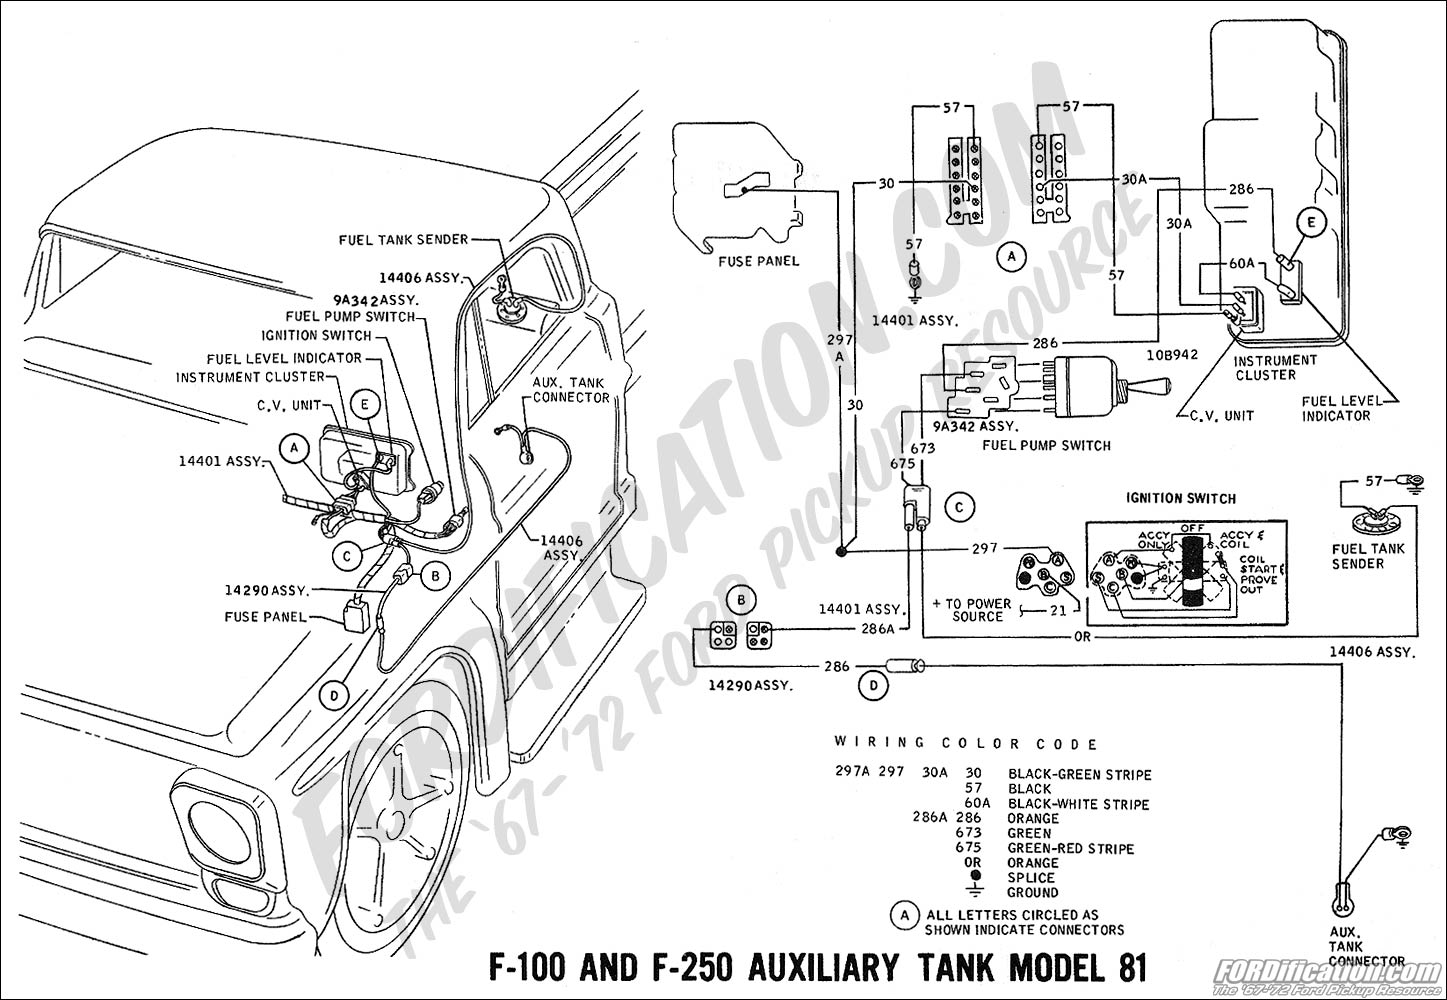 wiring_69aux fuel 1988 ford f 350 fuse box wiring diagram simonand 1979 ford f100 fuse box diagram at creativeand.co